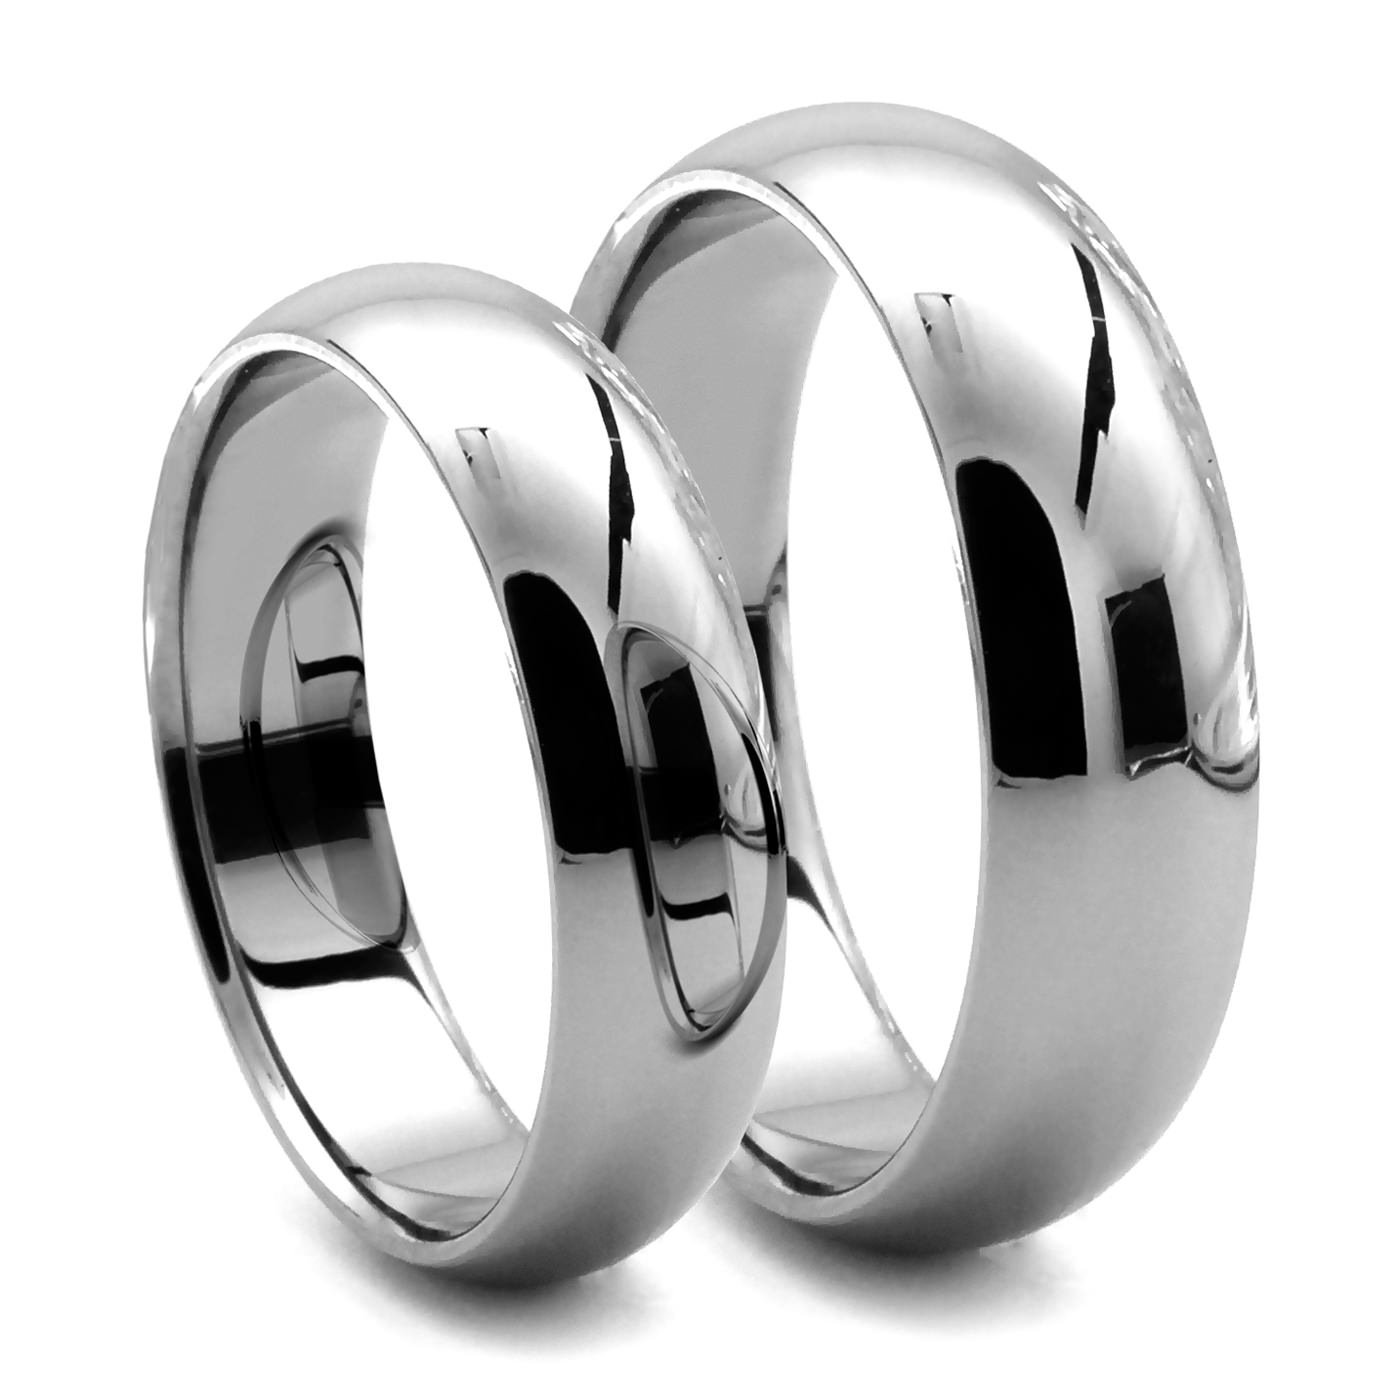 Platinum his and hers wedding rings wedding bands his - Platinum His And Hers Wedding Rings Wedding Bands His 29